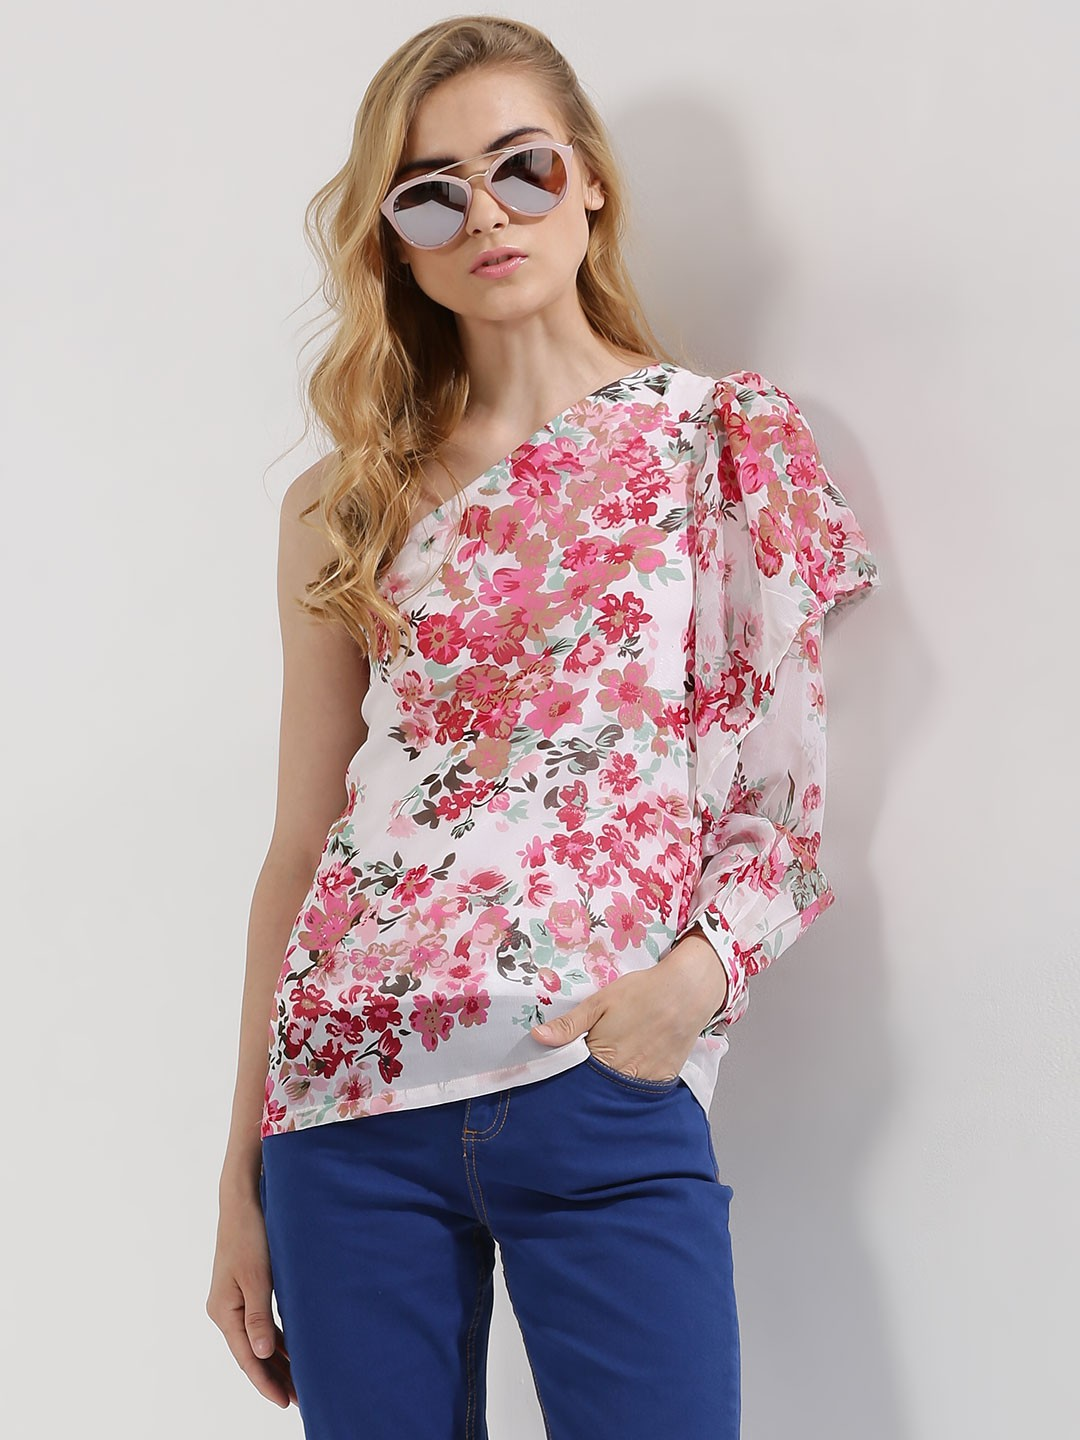 Closet Drama Print One Shoulder Floral Top 1